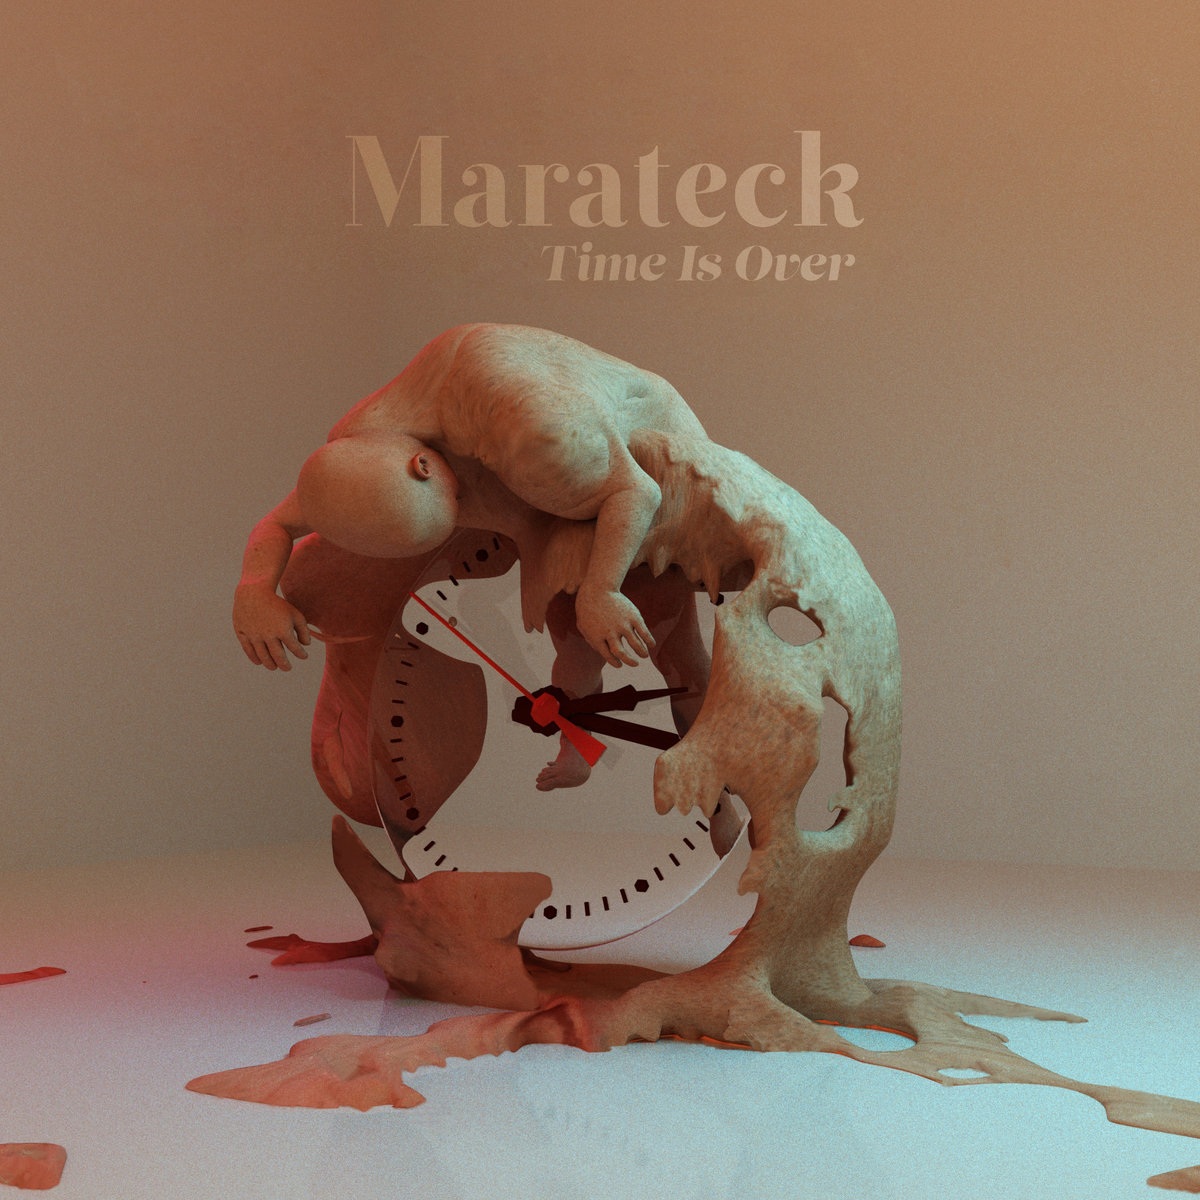 Marateck - Time is Over Dad and Sons Records (2017) composer and guitar, all tracks